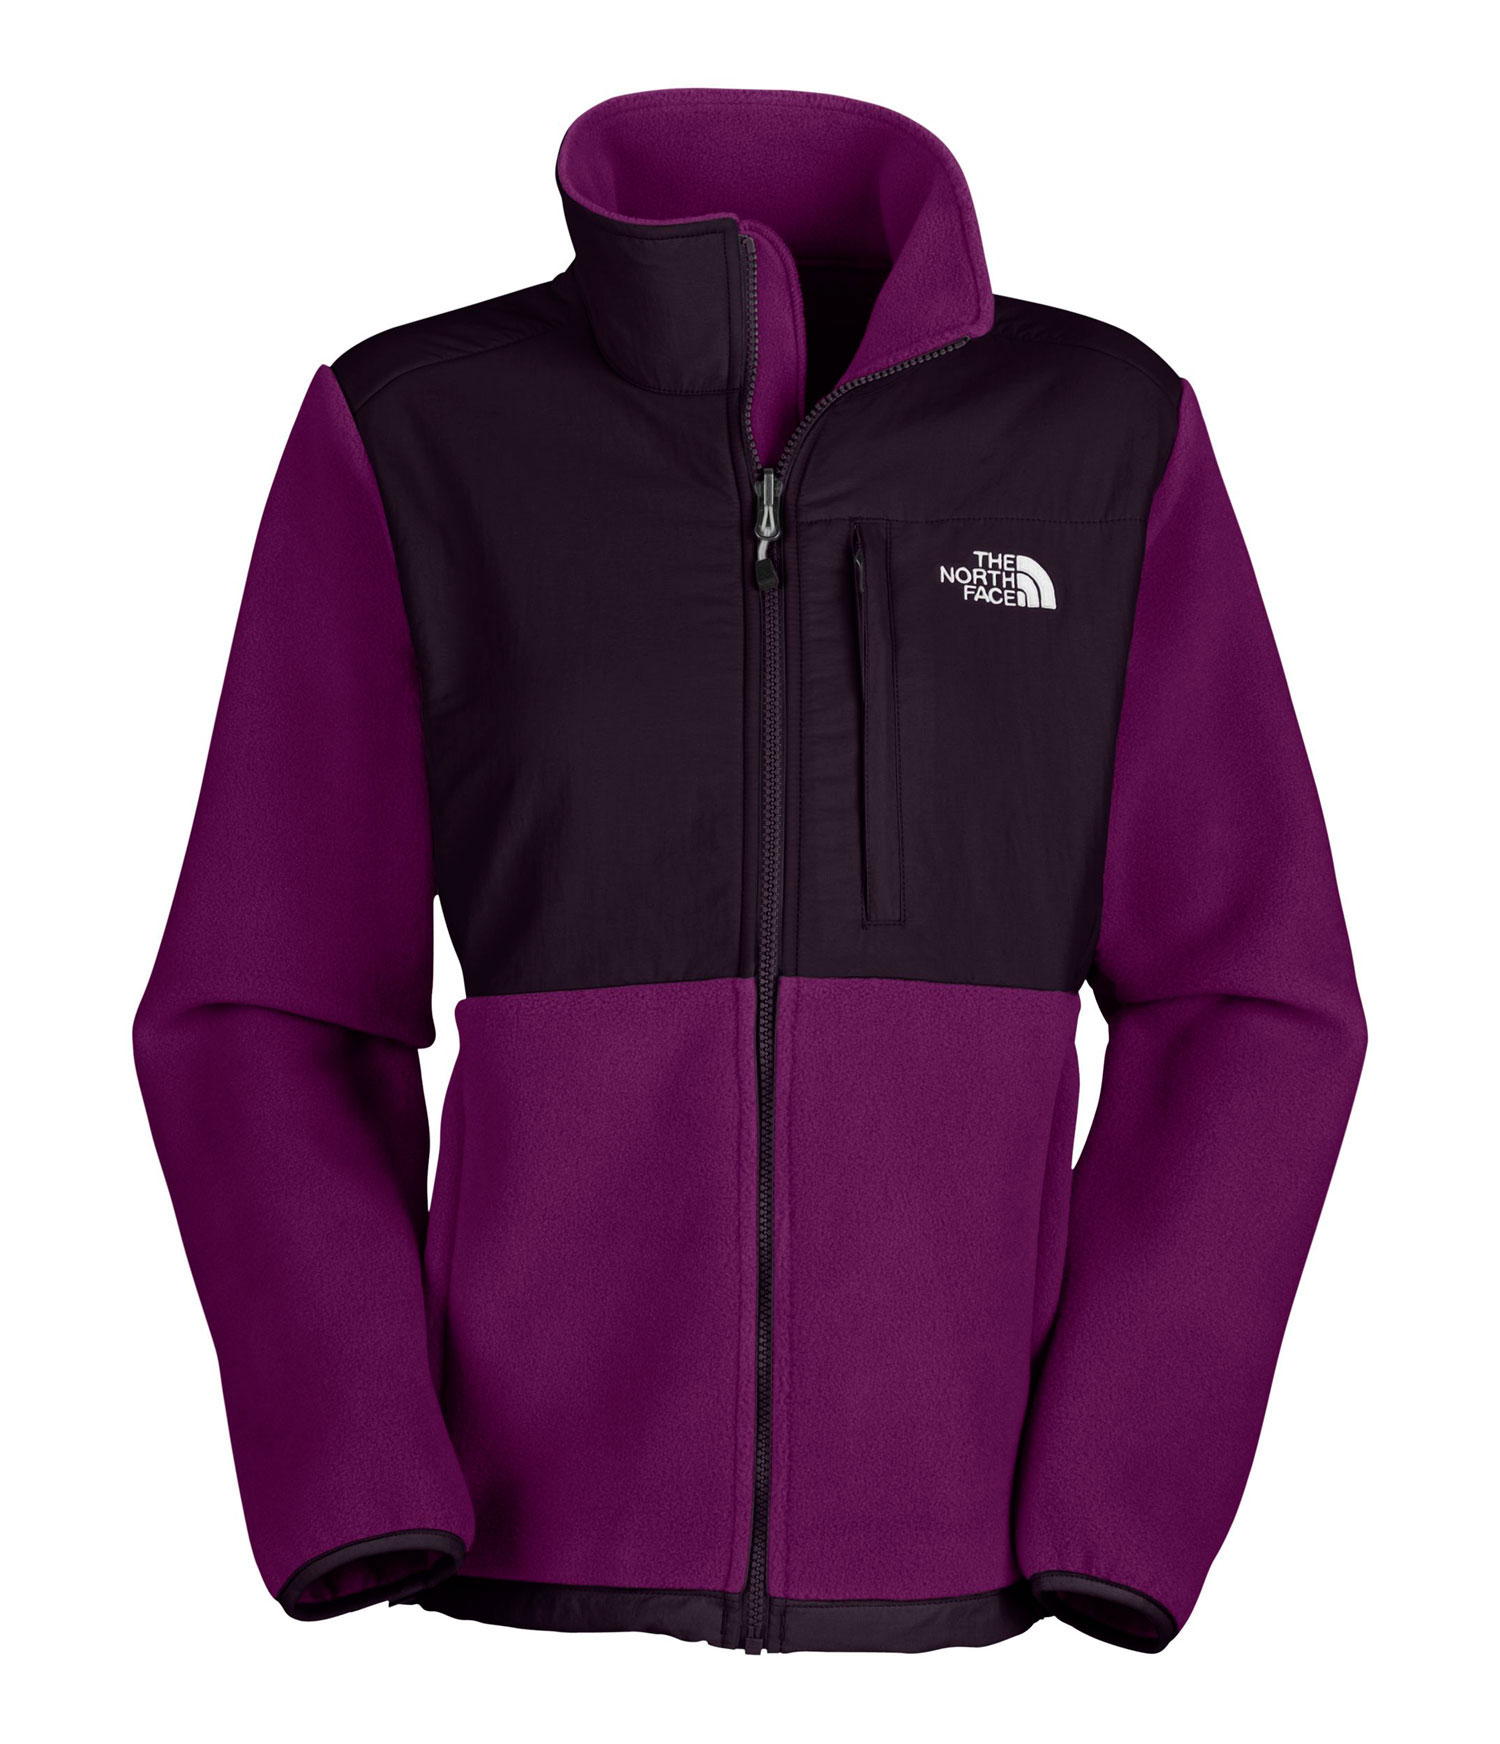 "Straightforward comfort and durability make this the ultimate all-around jacket for wintry cold. Key Features of The North Face Denali Jacket: Zip-in compatible integration with complementing garments from The North Face Abrasion-reinforced shoulders and chest Napoleon chest pocket Two secure-zip hand pockets Elastic-bound cuffs Avg weight: 551 g (19.4 oz) Center back: 26"" Fabric: body: Recycled Polartec 300 Series fleece with DWR abrasion: two-ply laundered nylon - $179.00"